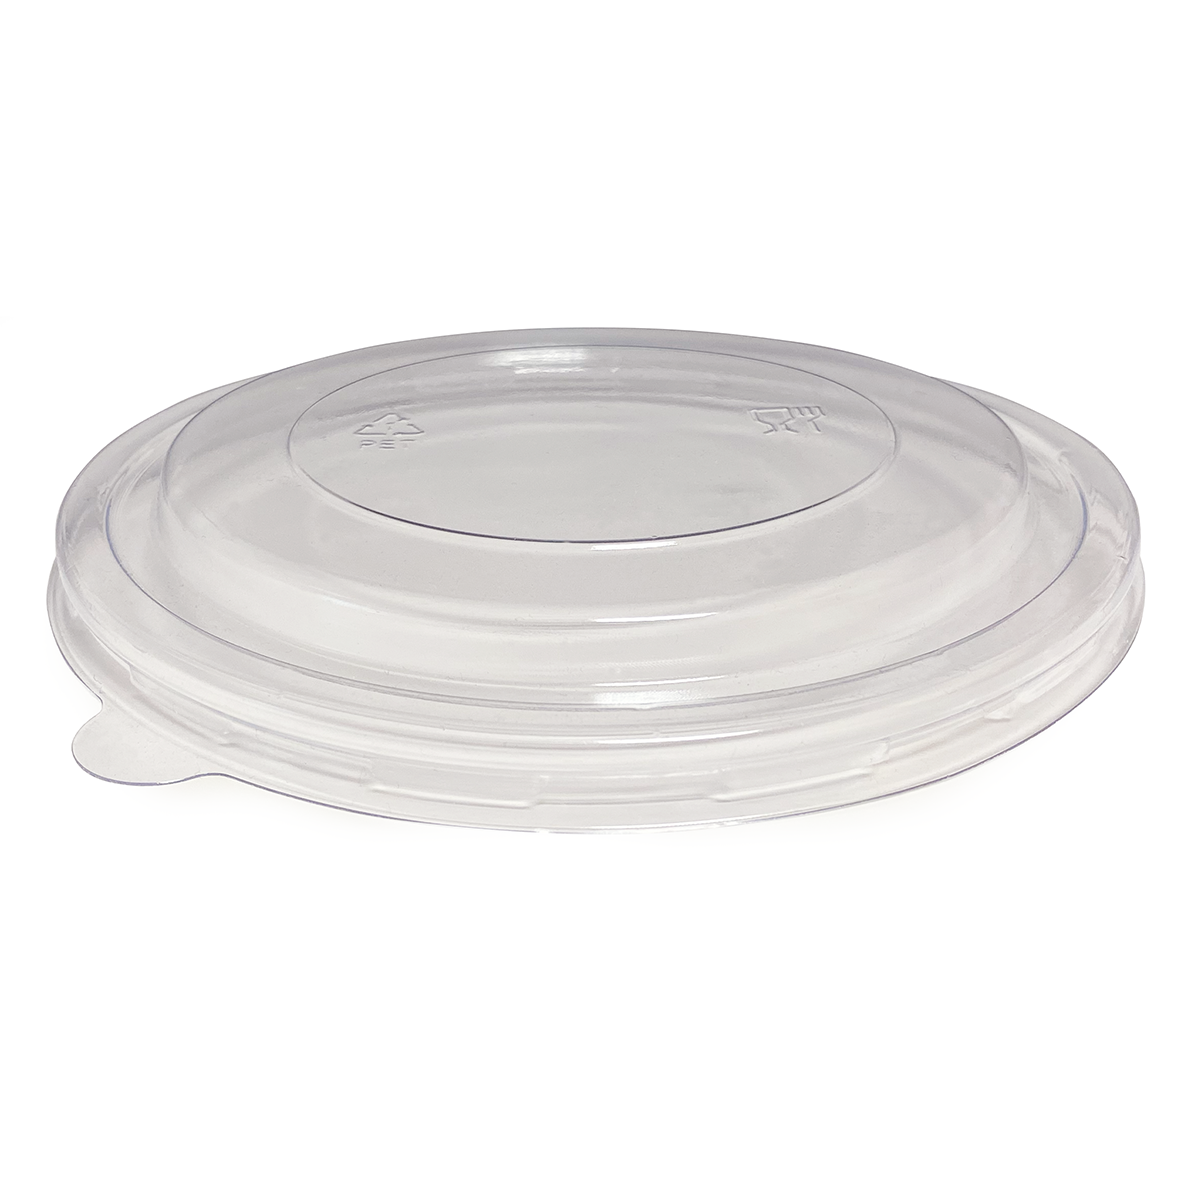 Simply Kraft Multi-food Bowl Lid - 750ml/1000ml